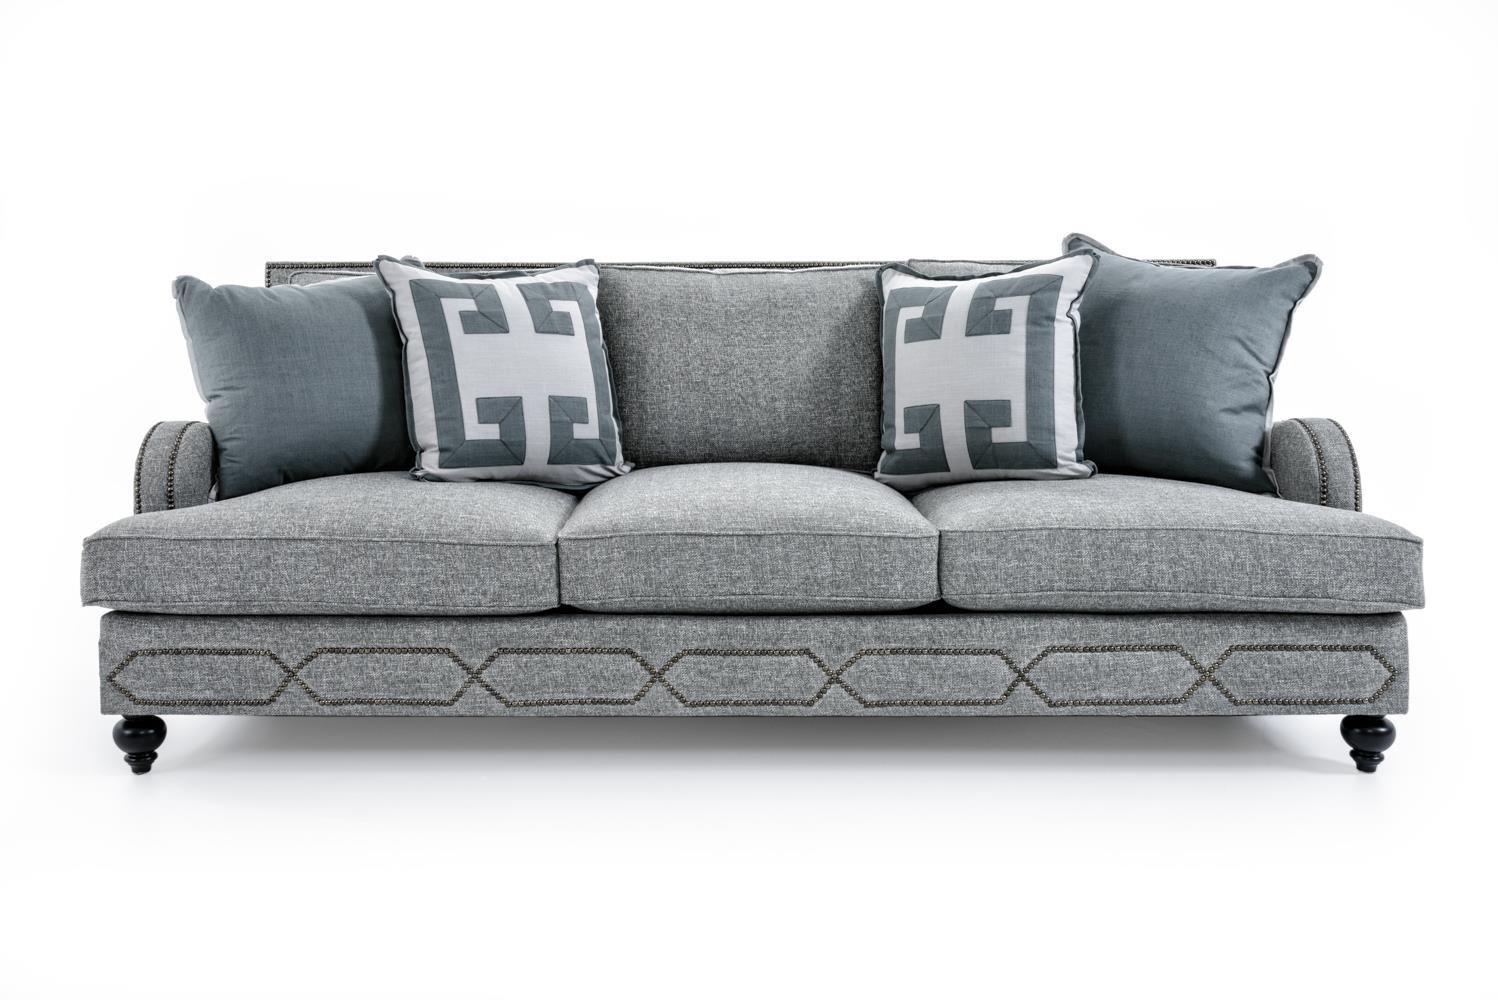 Bernhardt Franklin B4827A GRAY Sofa With Transitional Style | Baeru0027s  Furniture | Sofas